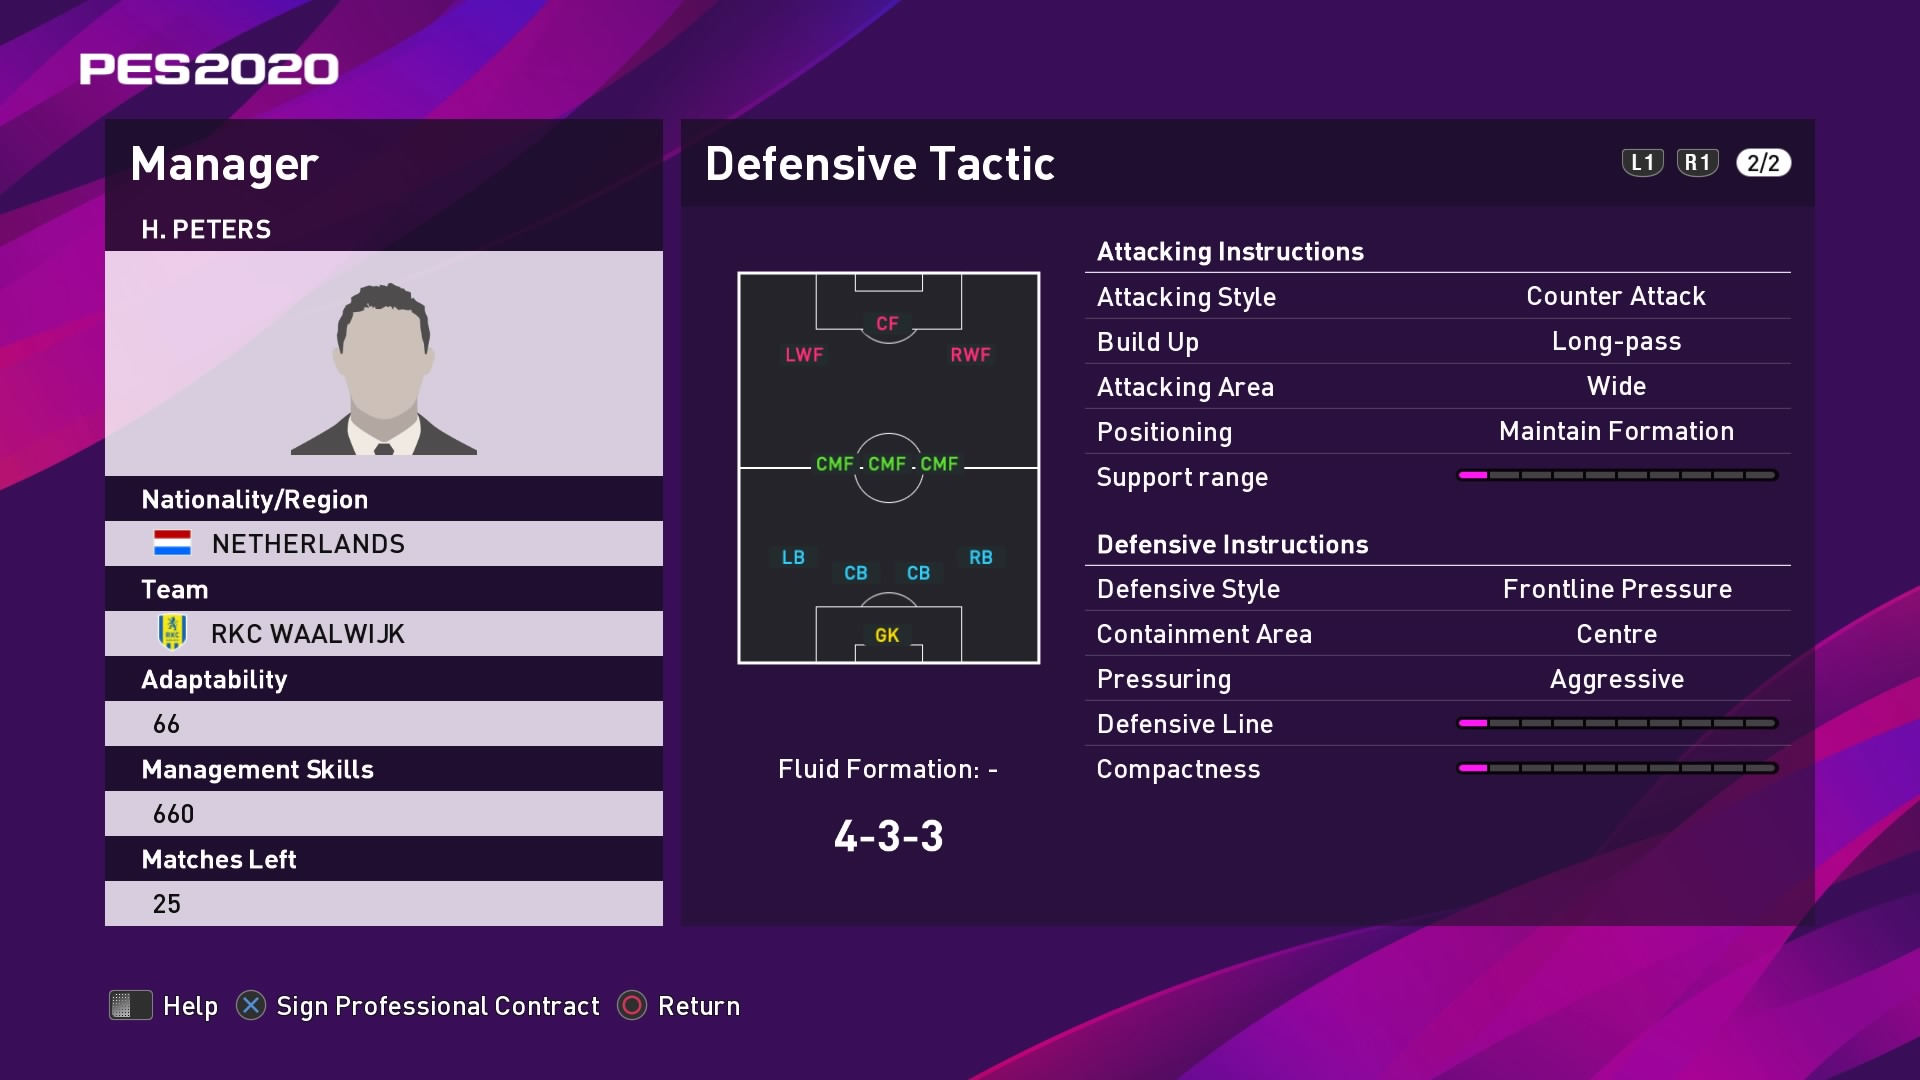 H. Peters (Fred Grim) Defensive Tactic in PES 2020 myClub